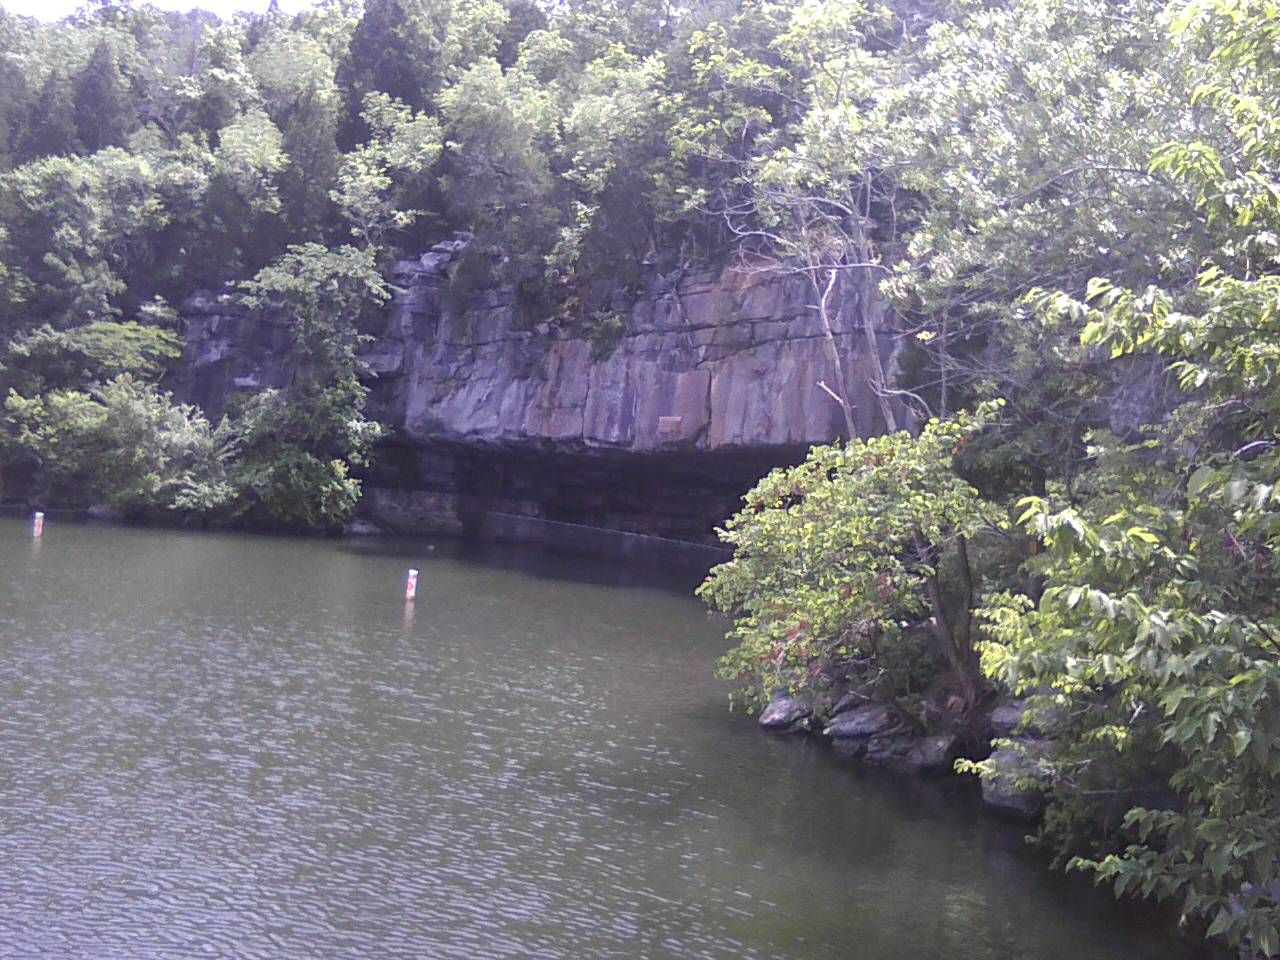 Tennessee marion county sequatchie - Nickajack Cave Is A Large Partially Flooded Cave In Marion County Tennessee It